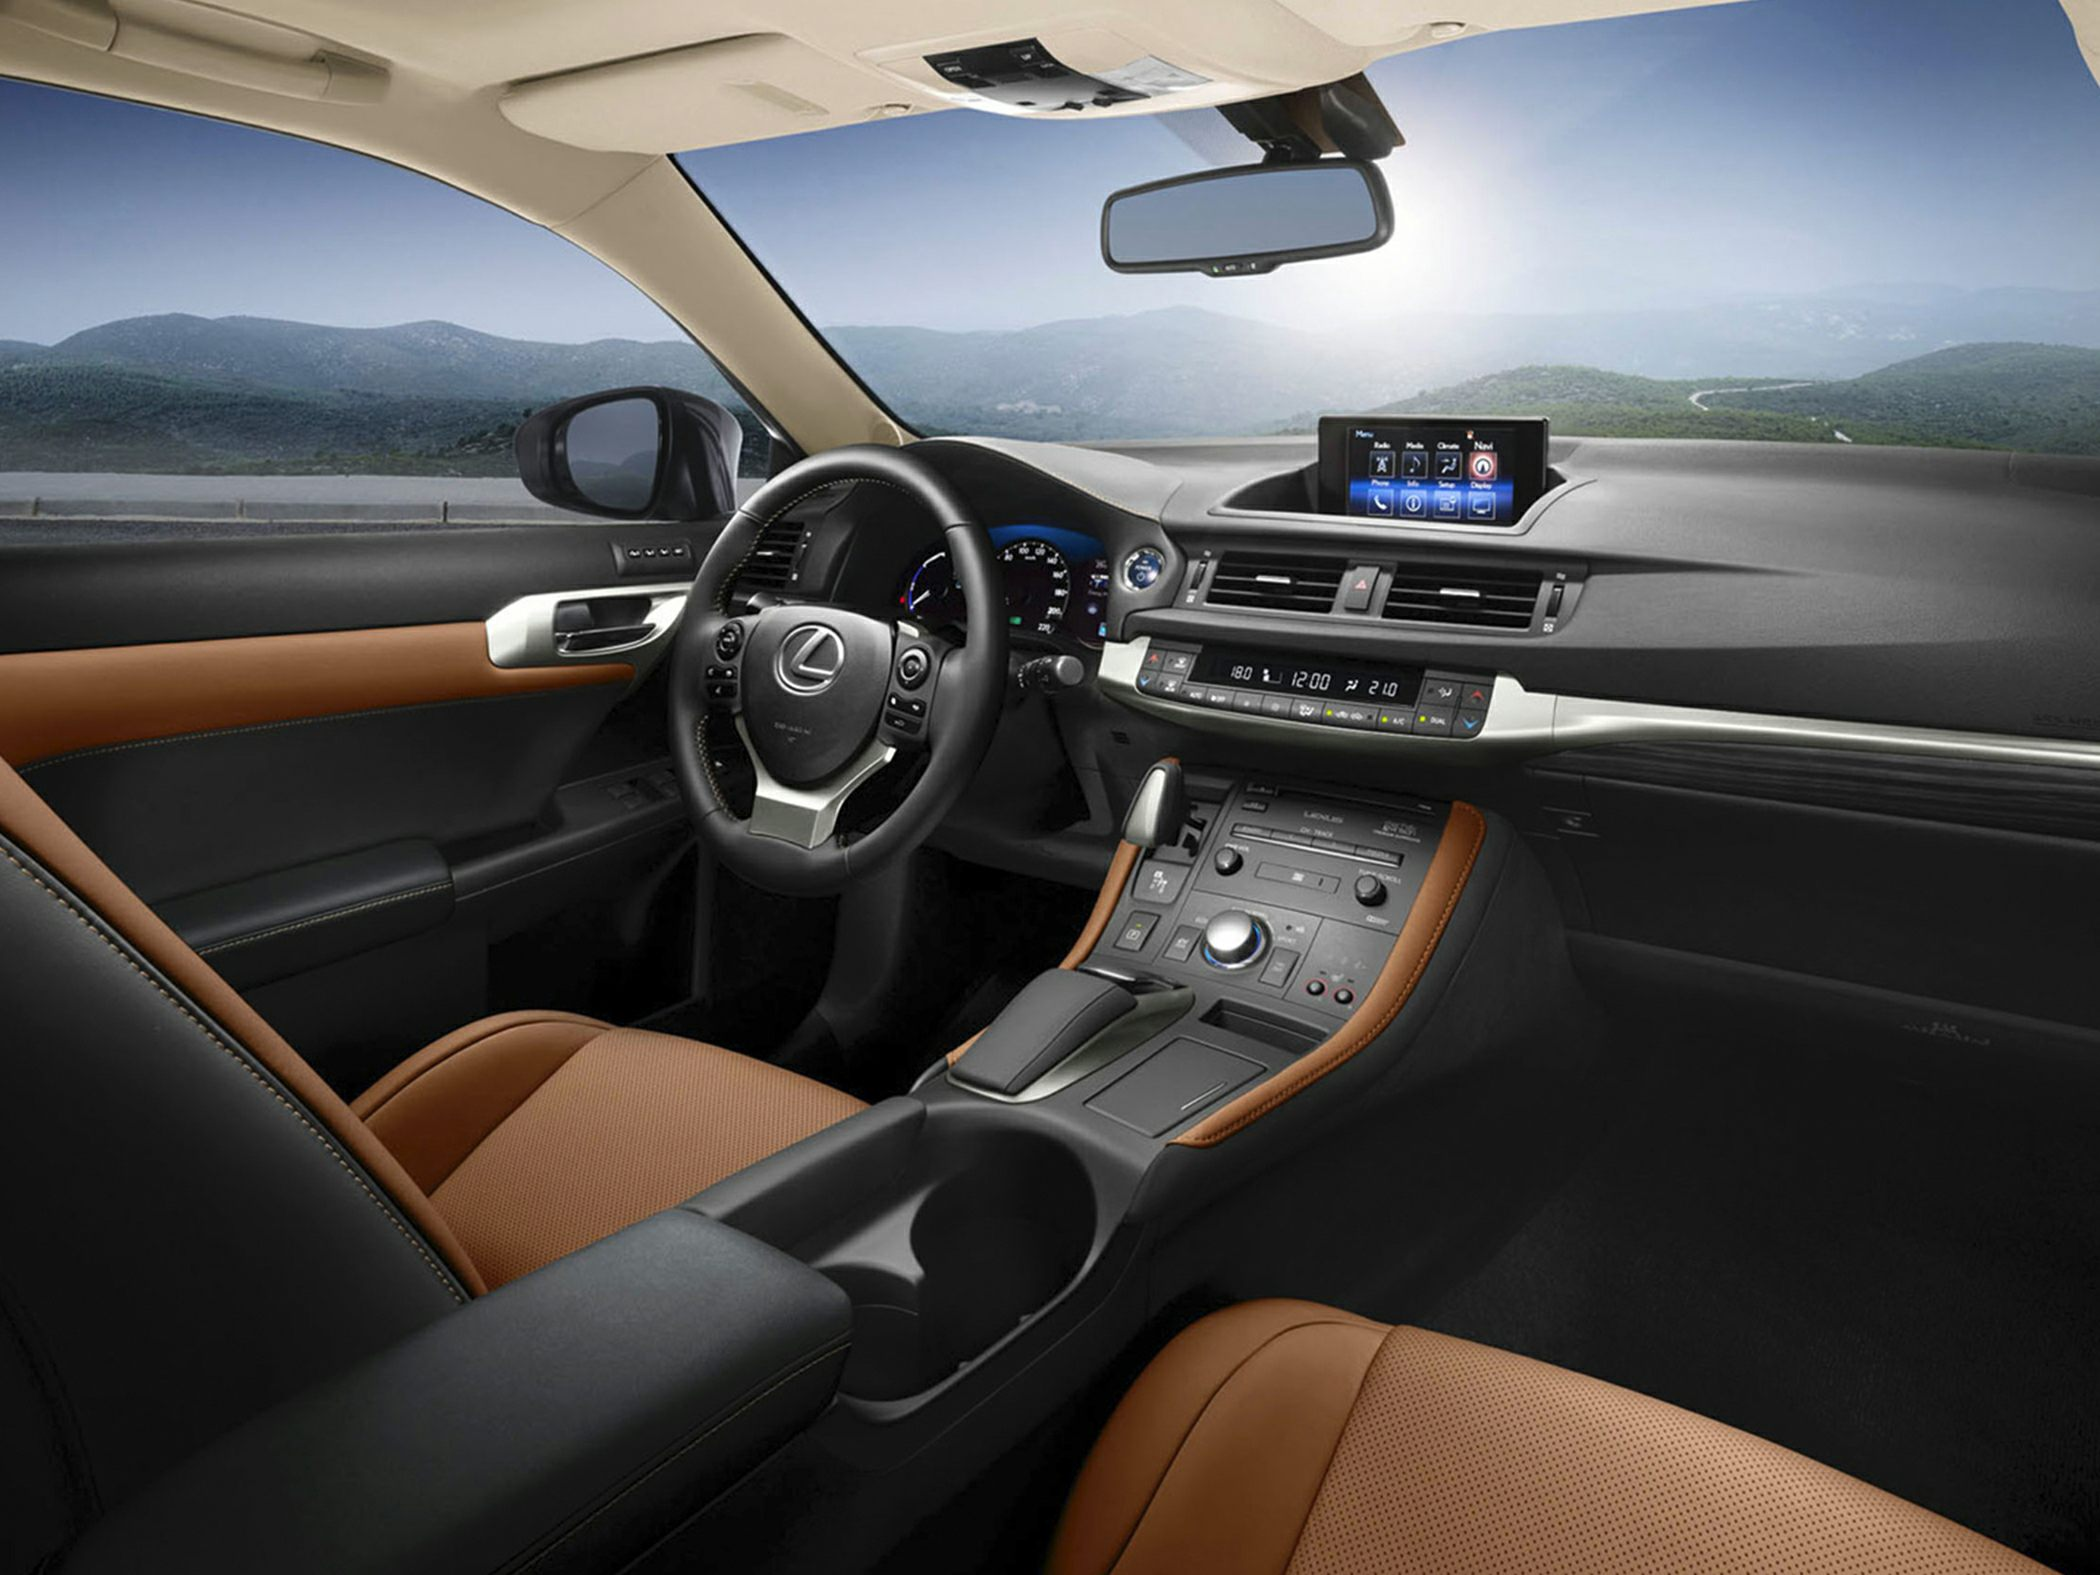 lexus radio system with Ct 200h on Watch likewise 100333399 2011 Toyota Yaris 4 Door Sedan Auto Gs Audio System moreover Jaguar Xkr Is Christina Hendricks Match Car moreover 2004 Toyota Corolla Air Conditioning System Wiring Diagram together with 650 Peugeot Rt3 Van Wireless Bluetooth Streaming Handsfree Interface.